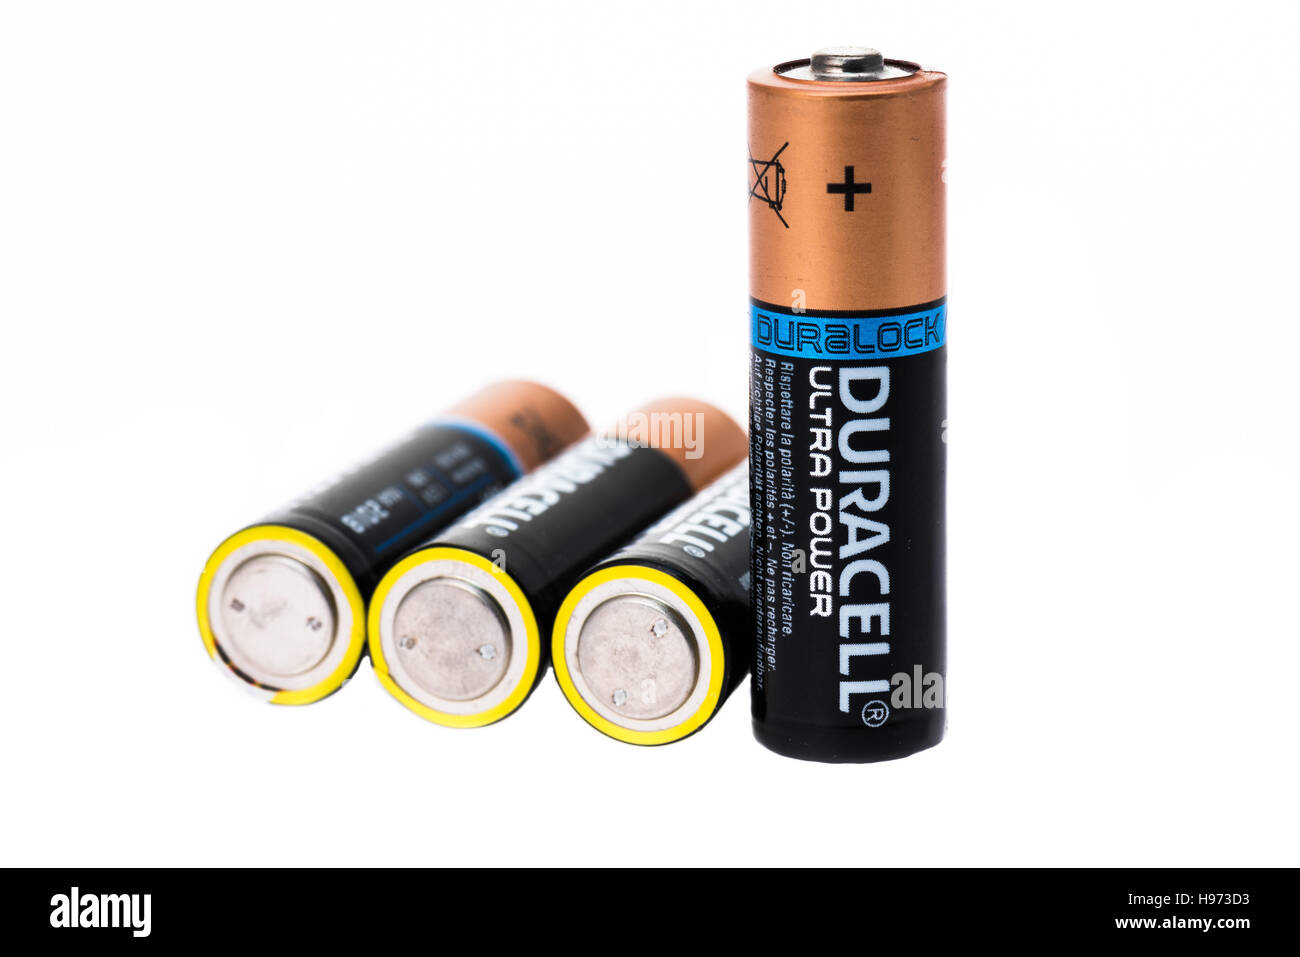 Duracell batteries on a white background - Stock Image